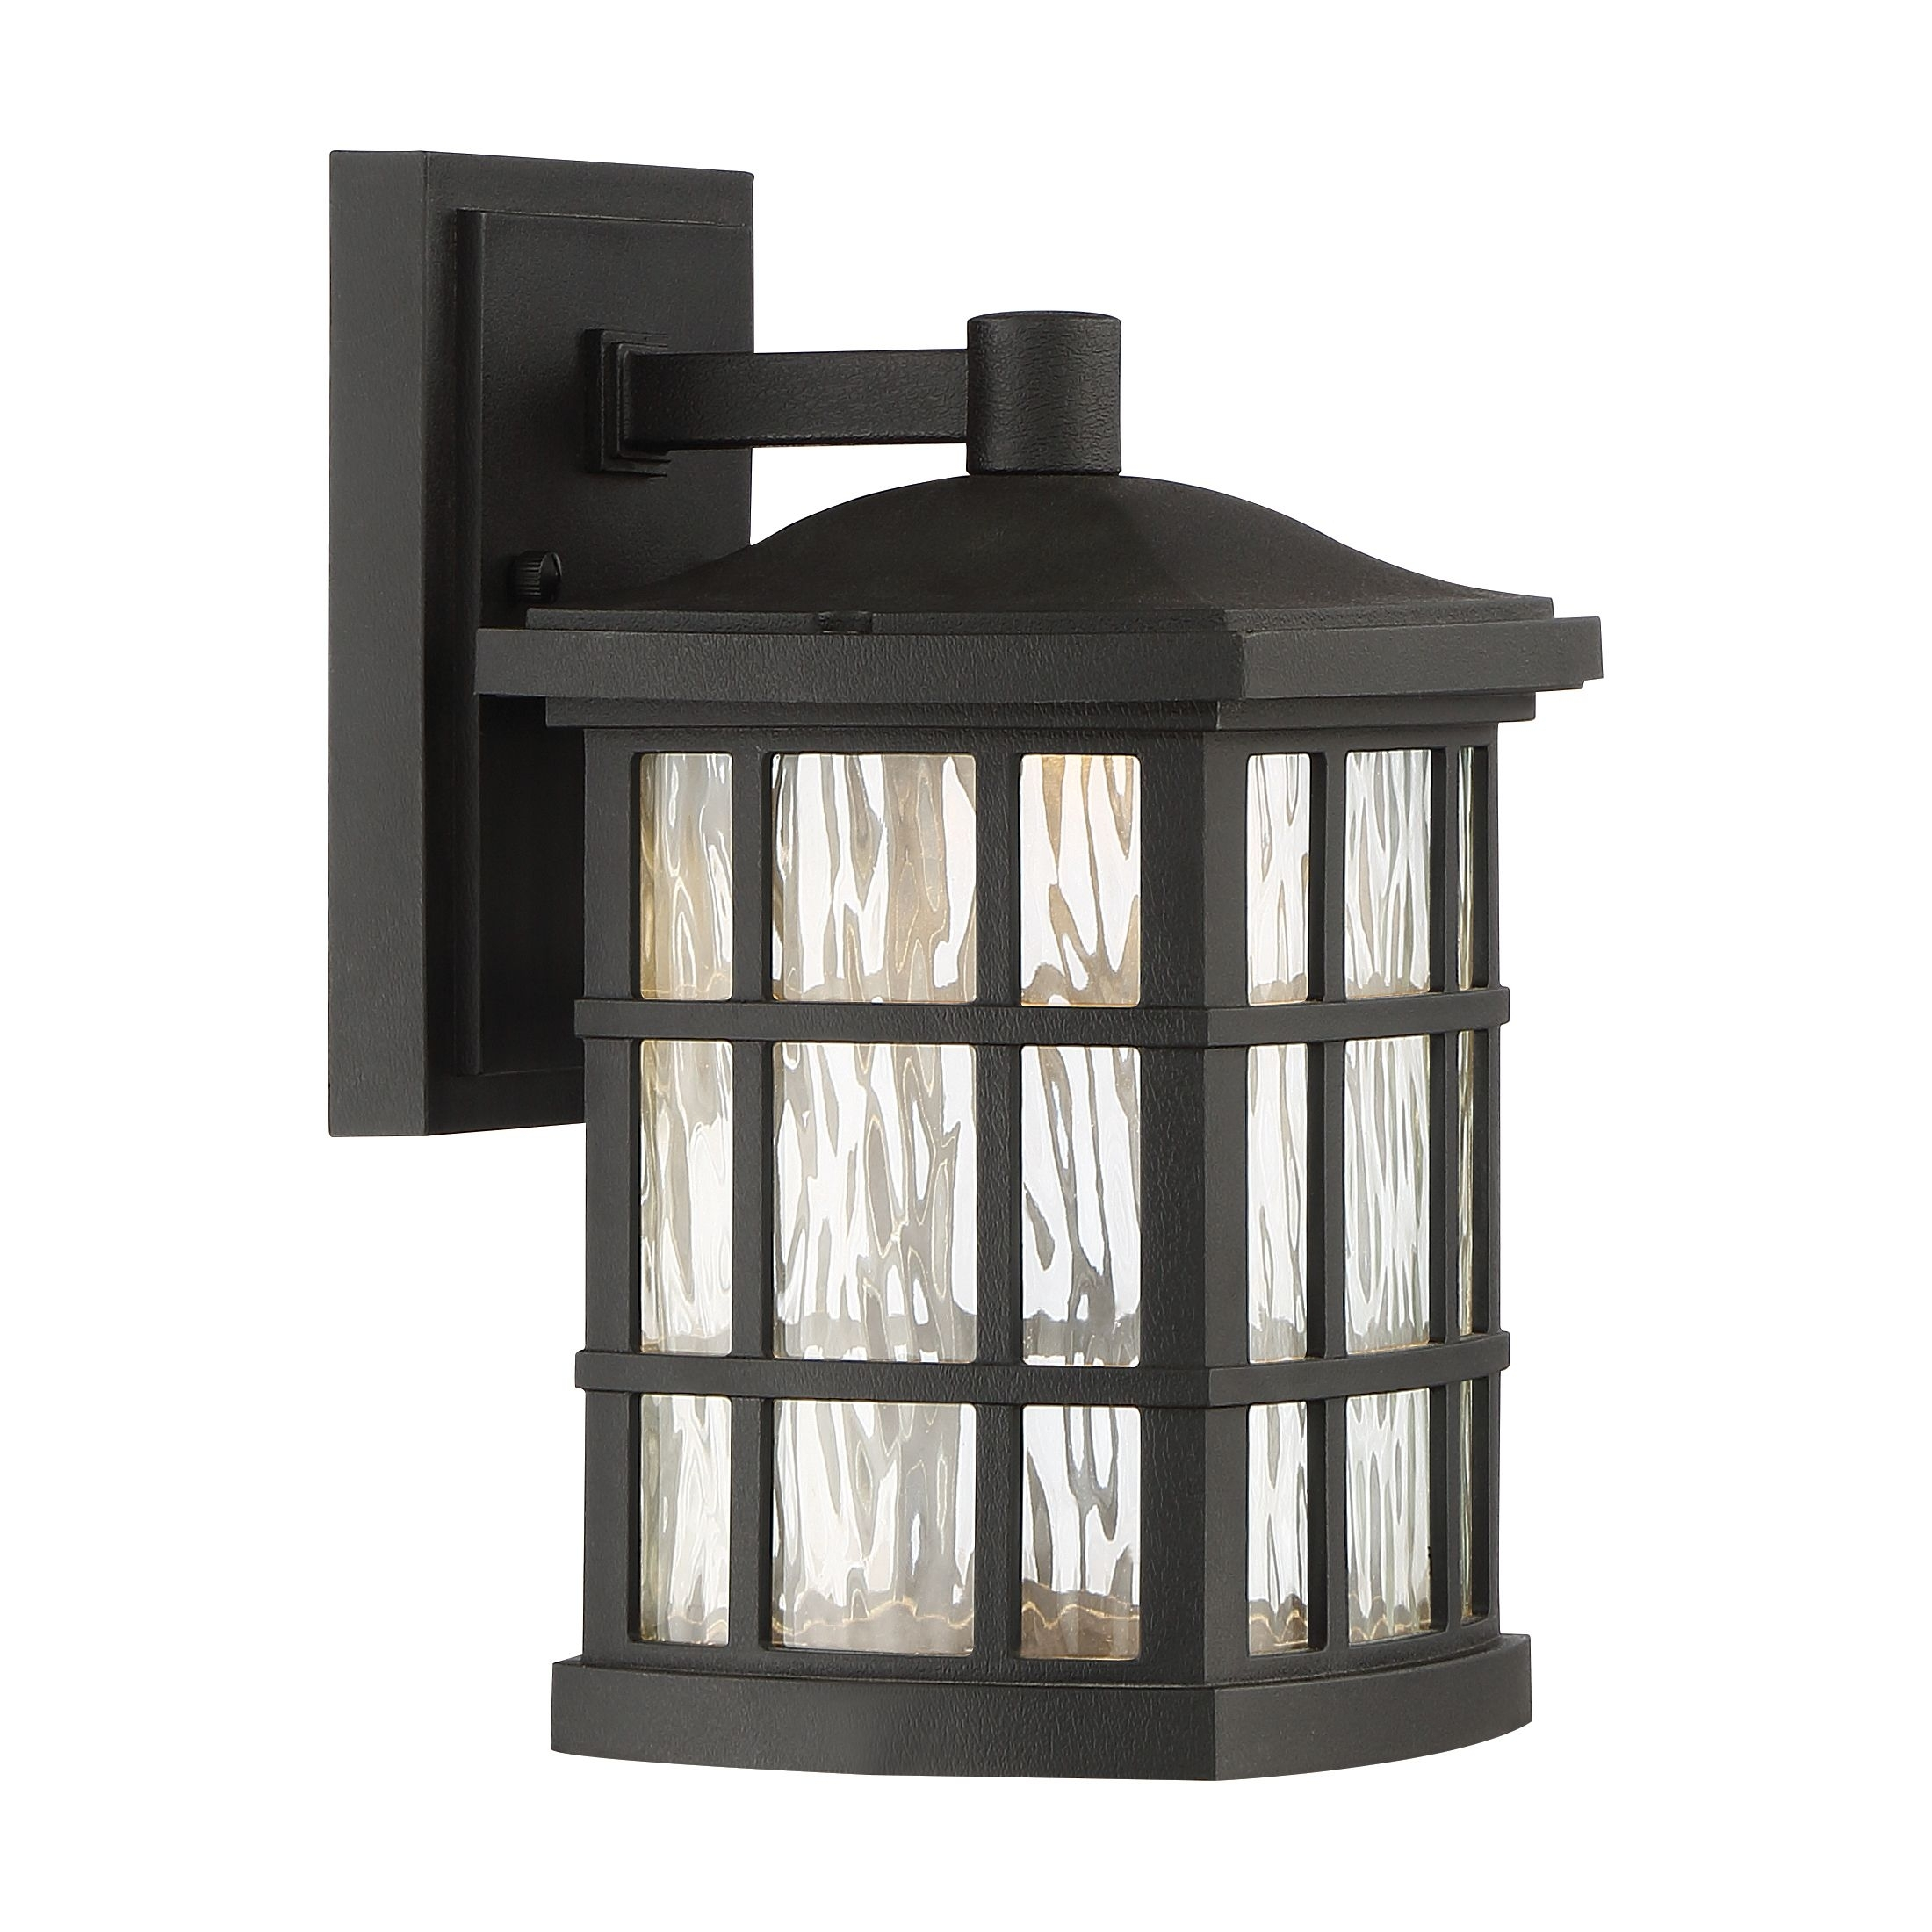 Stonington Led Outdoor Lantern | Quoizel With Outdoor Lanterns With Led Lights (View 15 of 20)